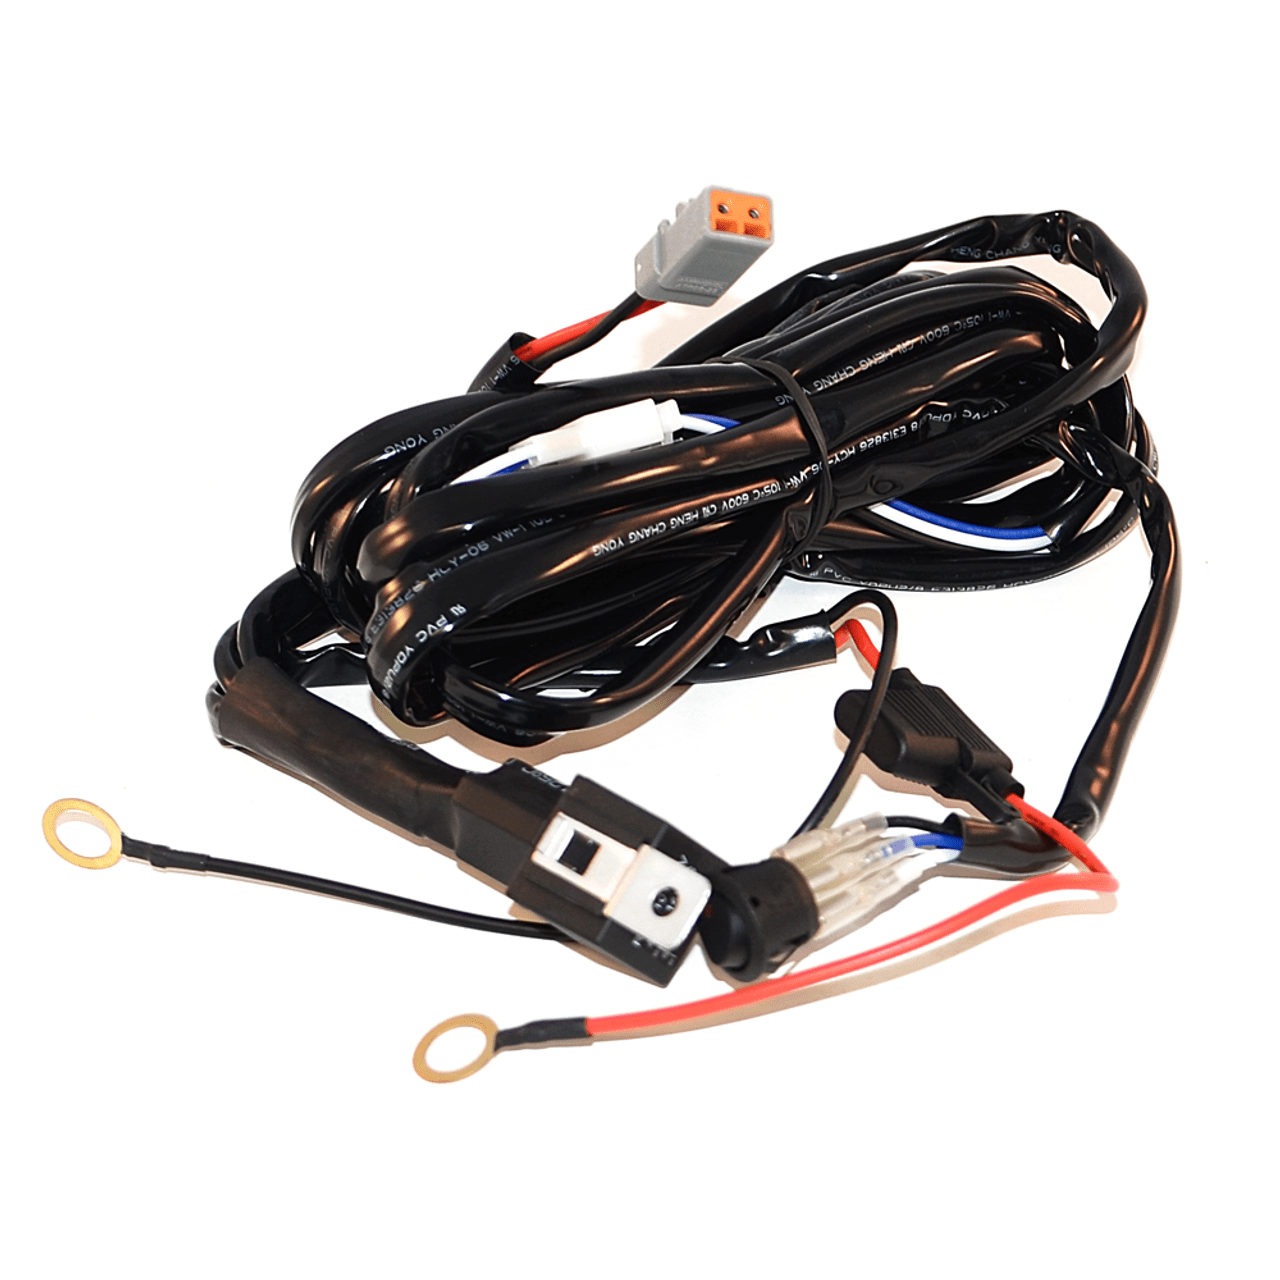 small resolution of 50 led light bar wiring harness u2013 blkmtn50 led light bar wiring harness